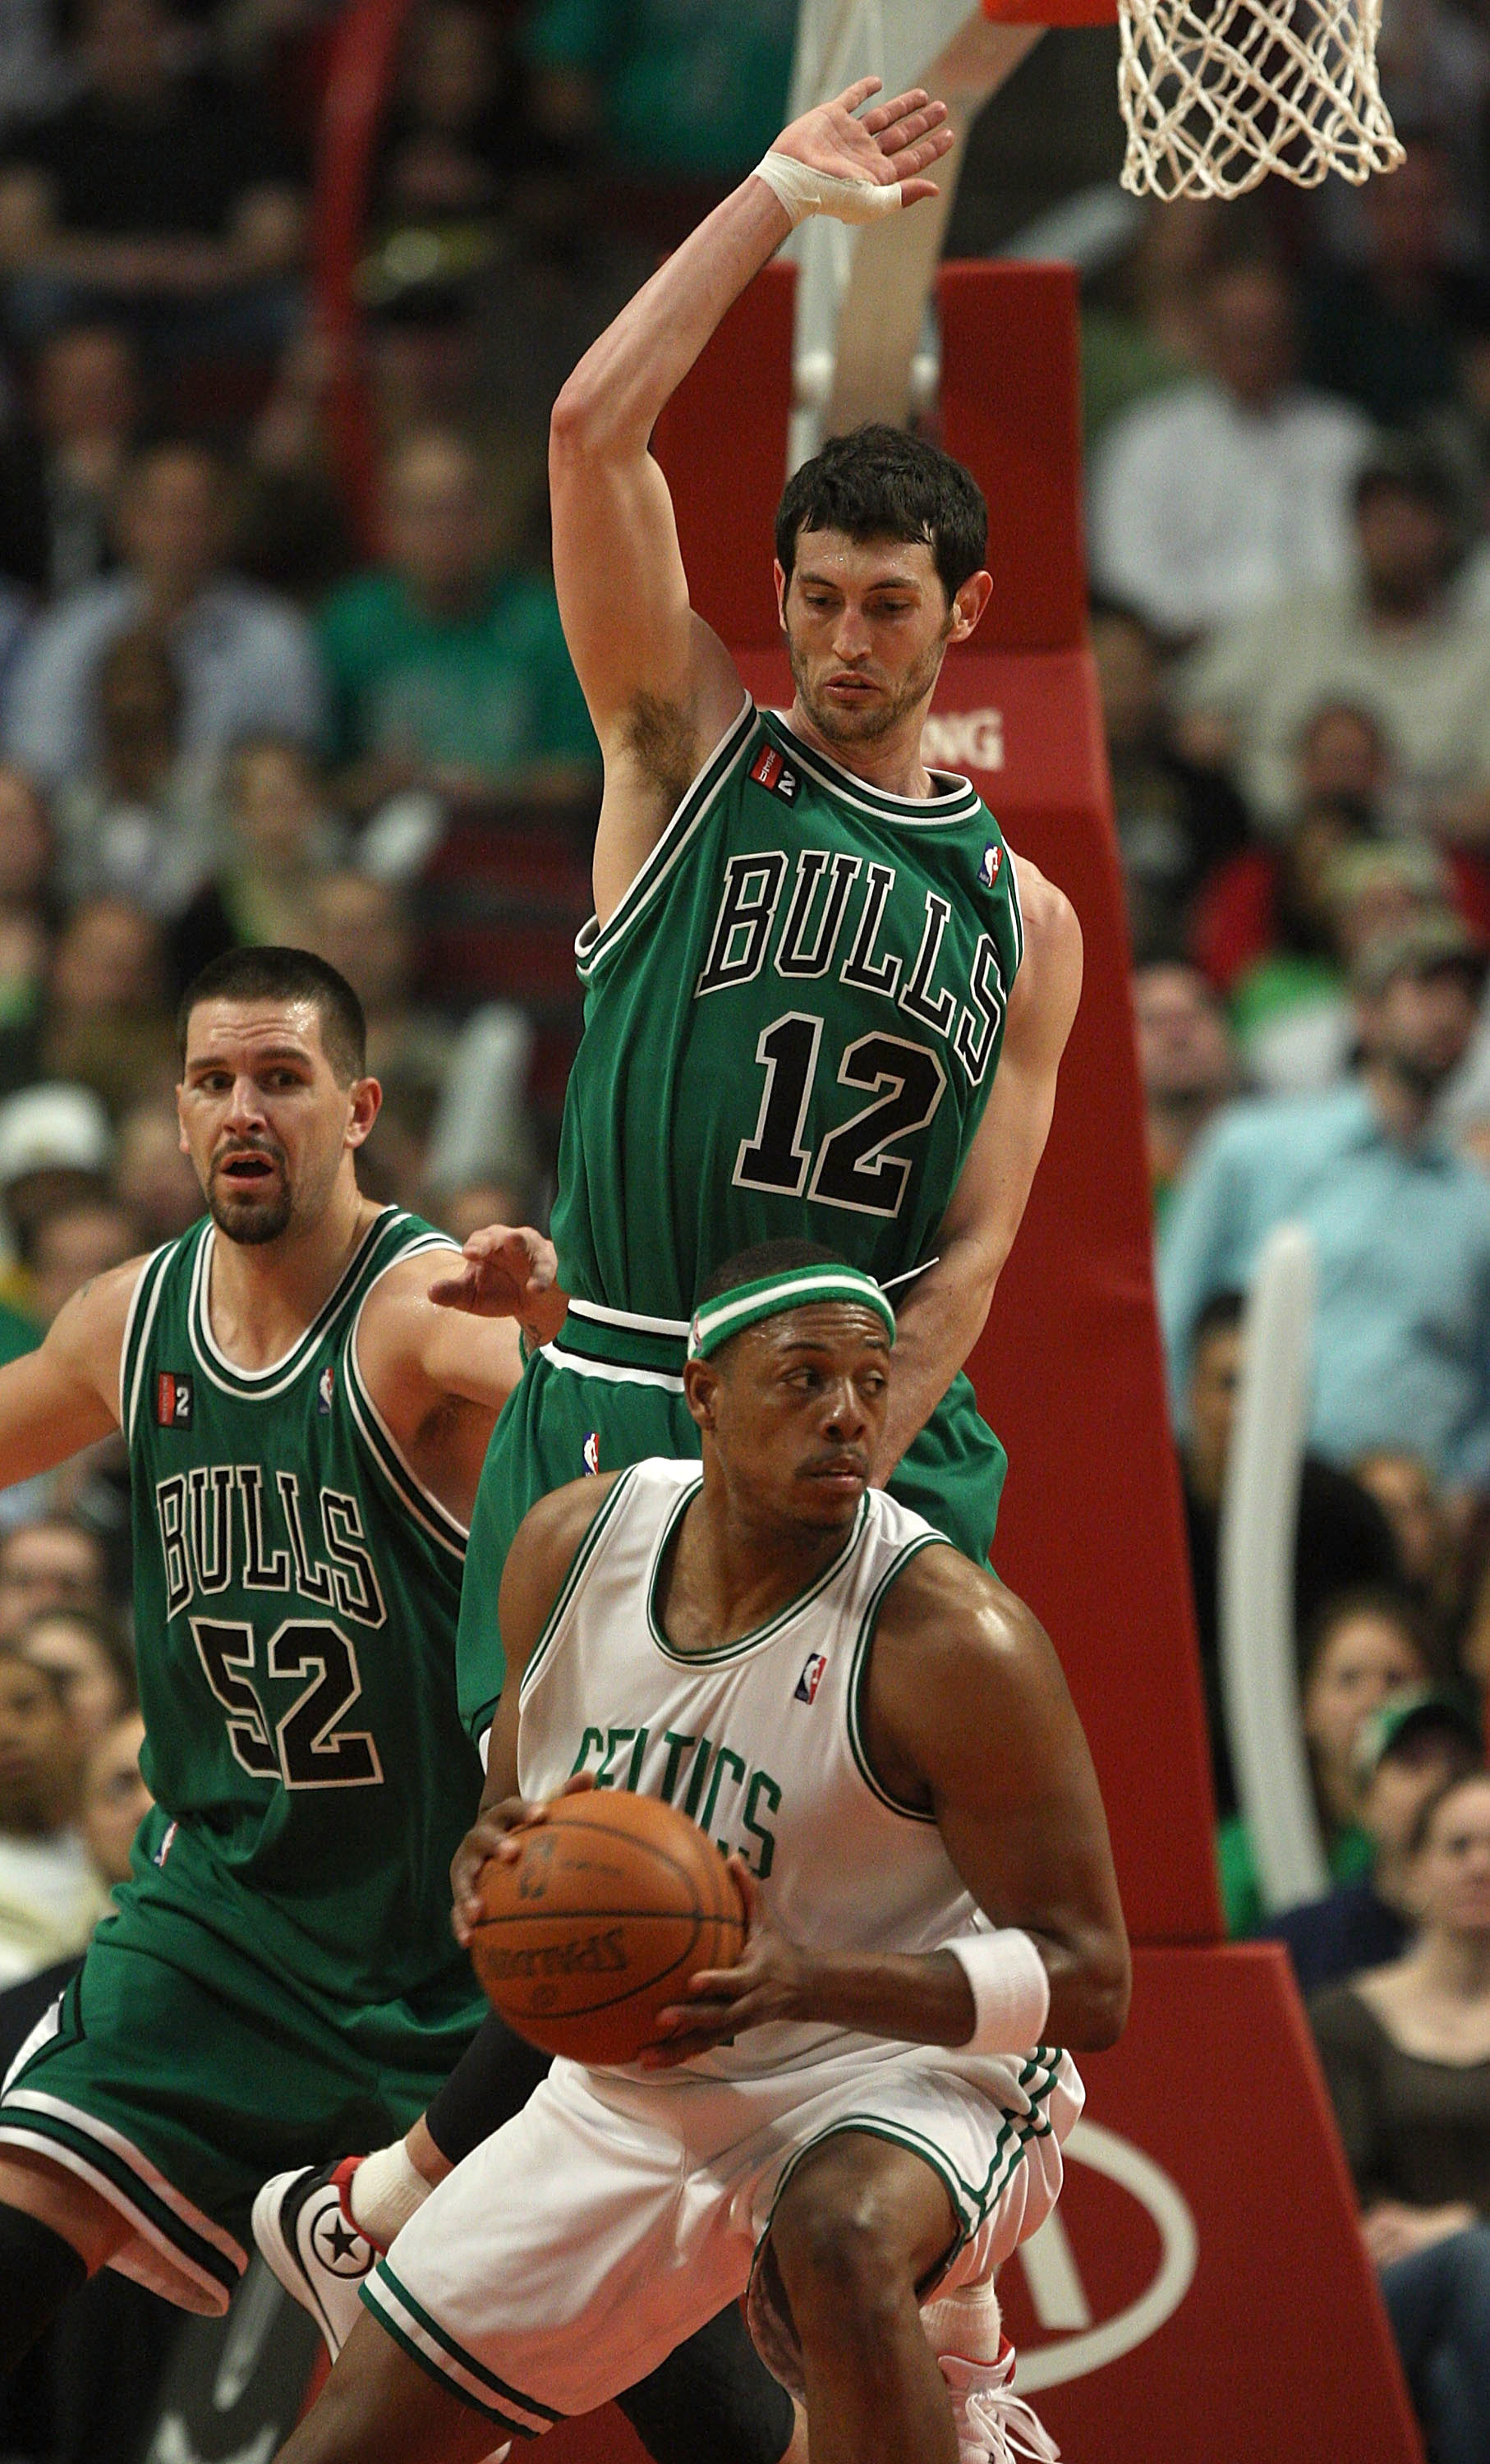 CHICAGO - MARCH 17: Kirk Hinrich #12 of the Chicago Bulls jumps to defend against Paul Pierce #34 of the Boston Celtics as Brad Miller #52 assists on March 17, 2009 at the United Center in Chicago, Illinois. The Bulls defeated the Celtics 127-121. NOTE TO